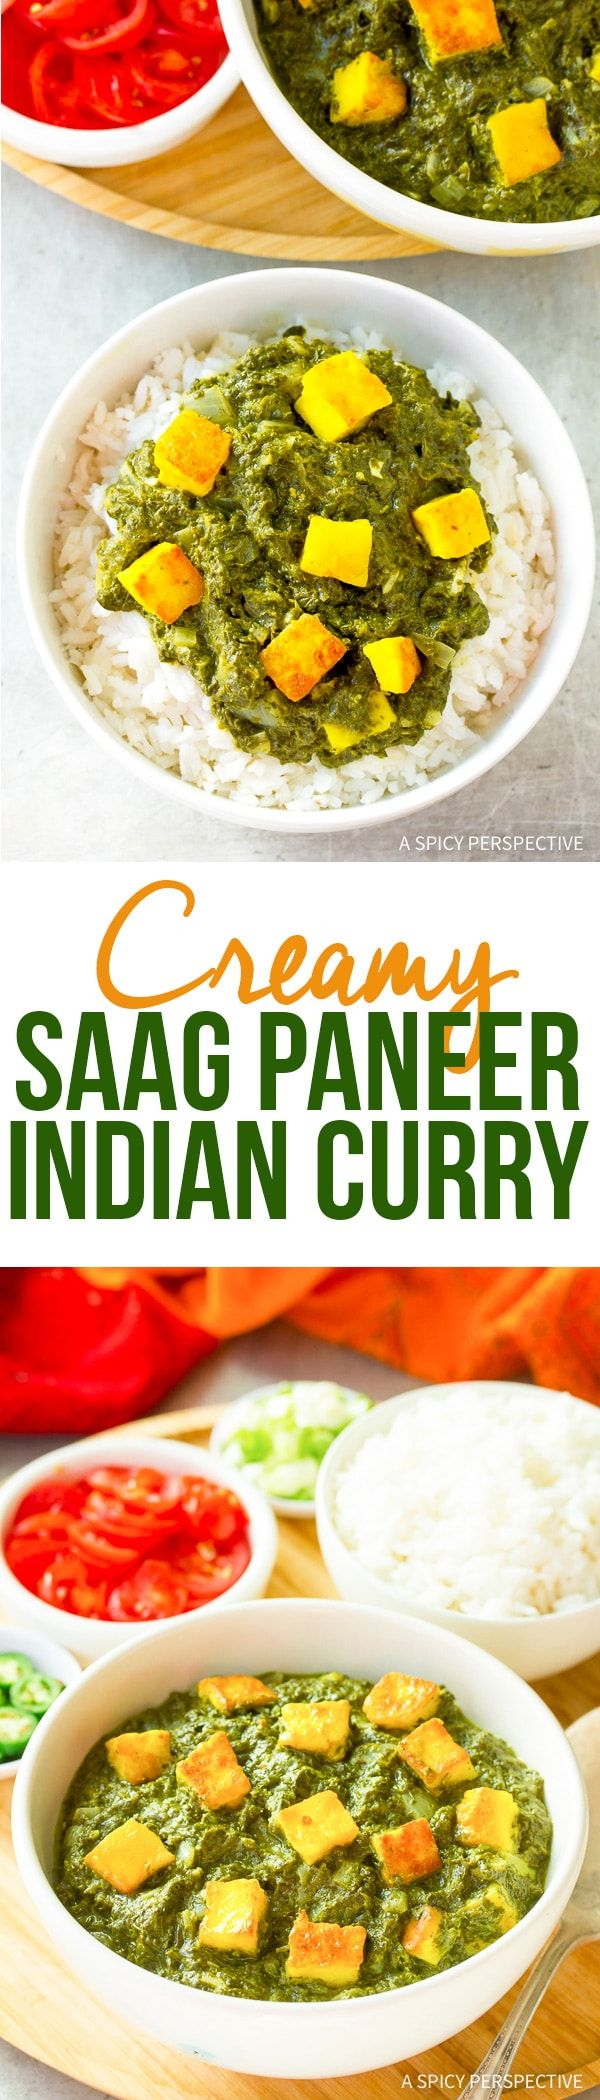 Creamy Saag Paneer Recipe - A classic vegetarian Indian dish made with fresh spinach, coconut milk and paneer cheese. It's ready in just 15 minutes! via @spicyperspectiv